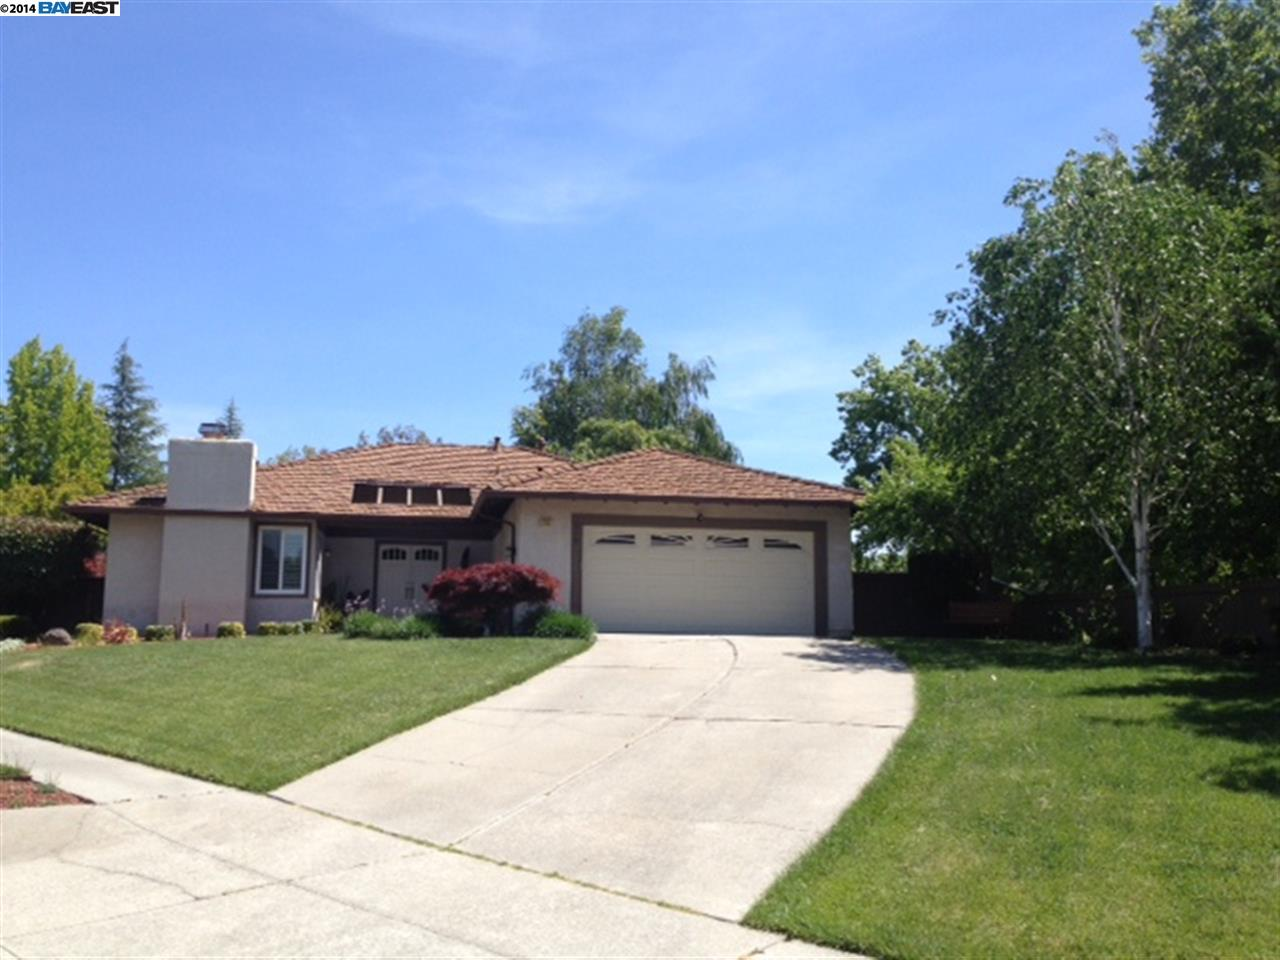 Additional photo for property listing at 215 ROYAL SAINT Court  Danville, カリフォルニア 94526 アメリカ合衆国